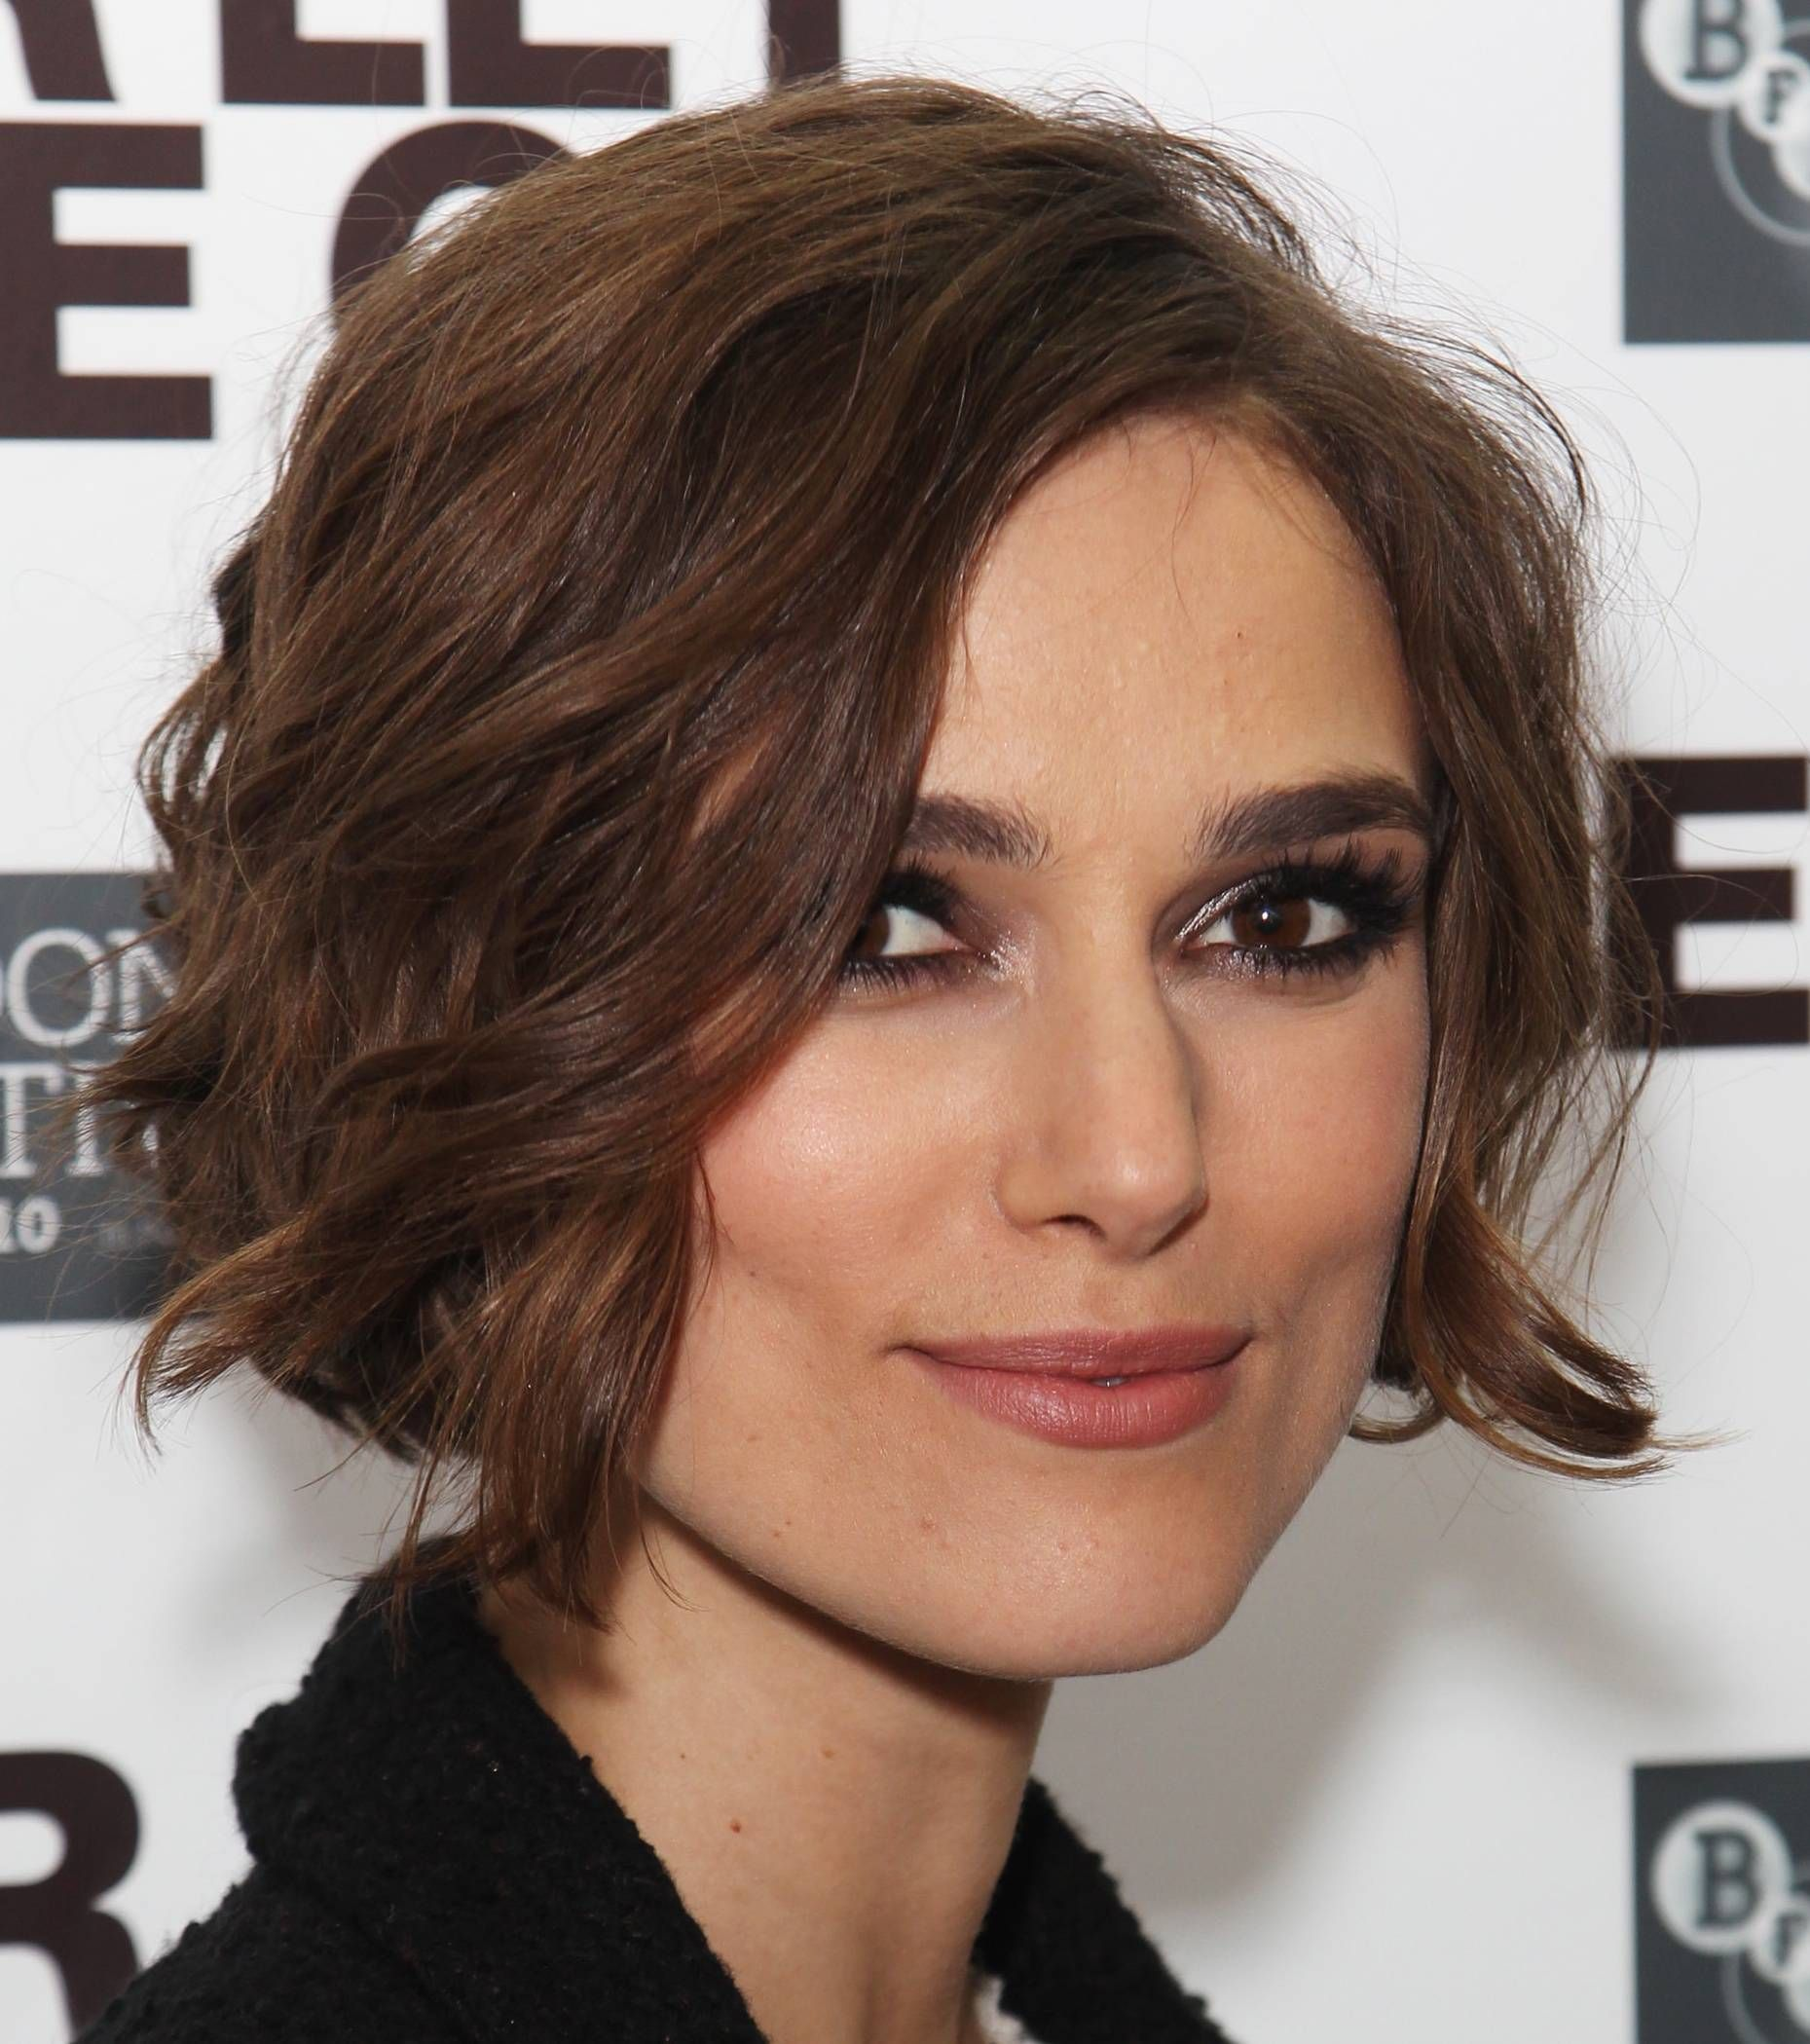 Thinking Of Going Shorter Here Are 60 Short Hairstyles To Inspire You Square Face Hairstyles Haircuts For Wavy Hair Modern Bob Hairstyles